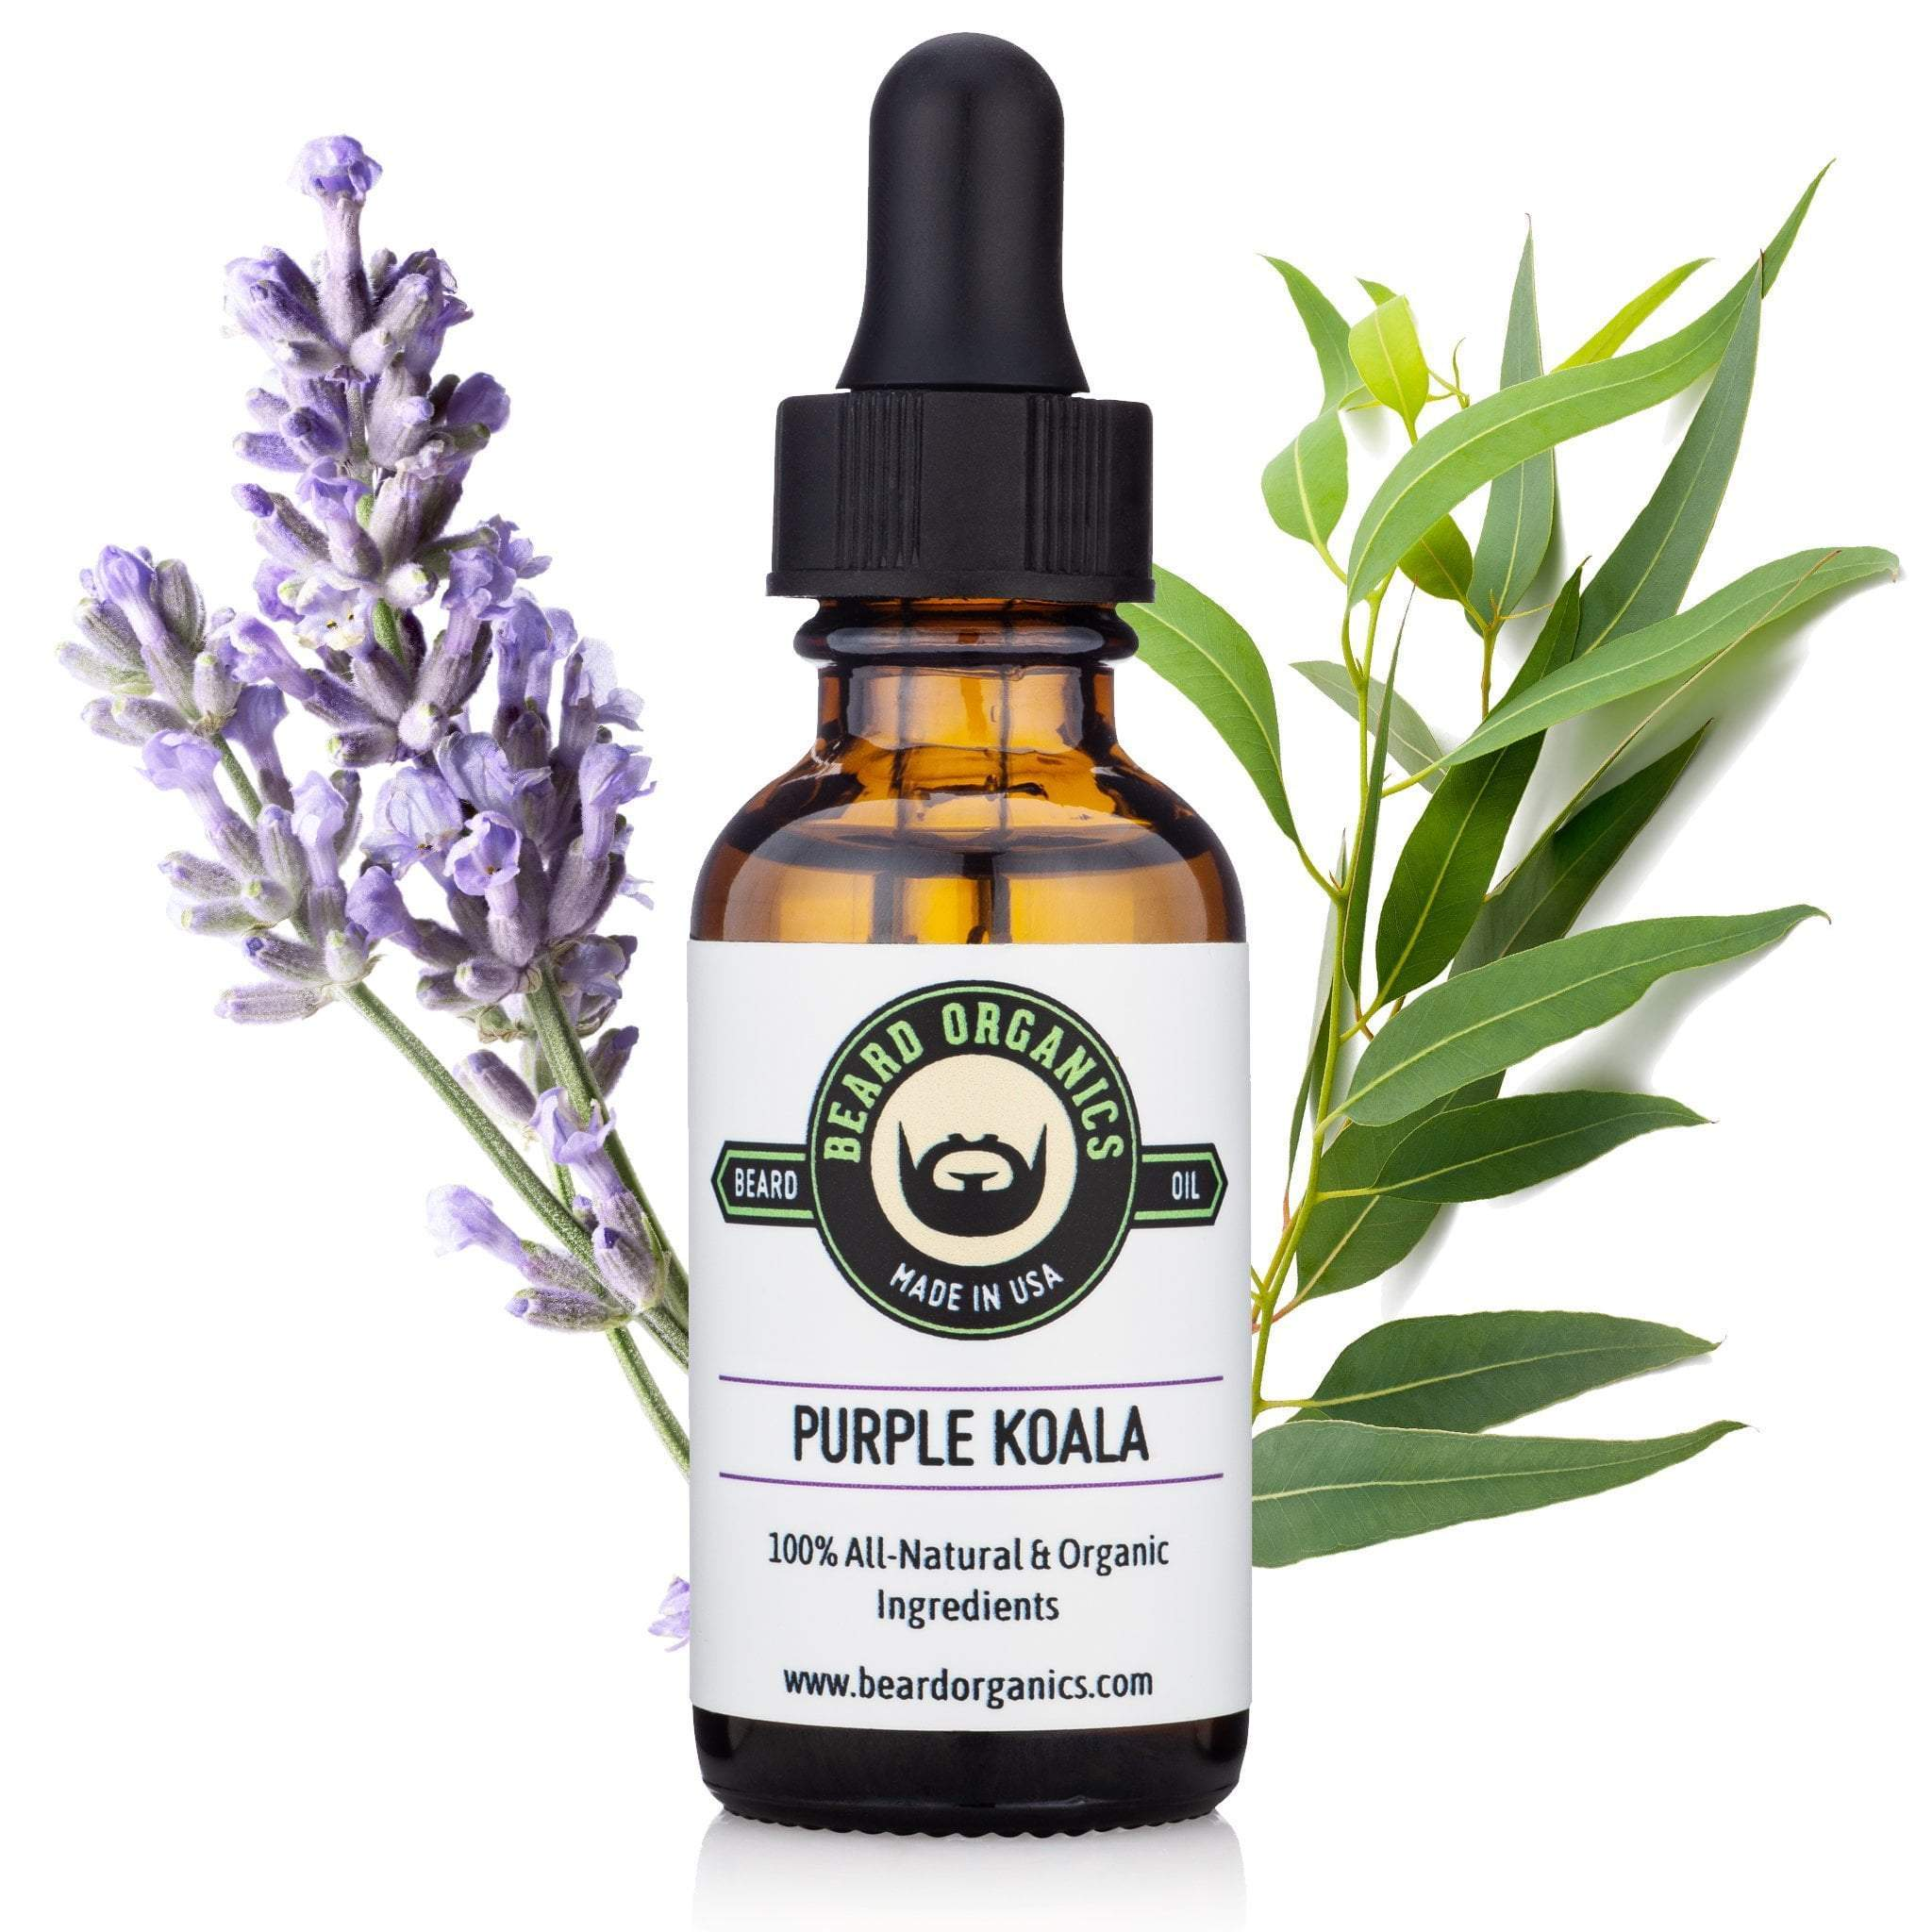 Purple Koala Beard Oil